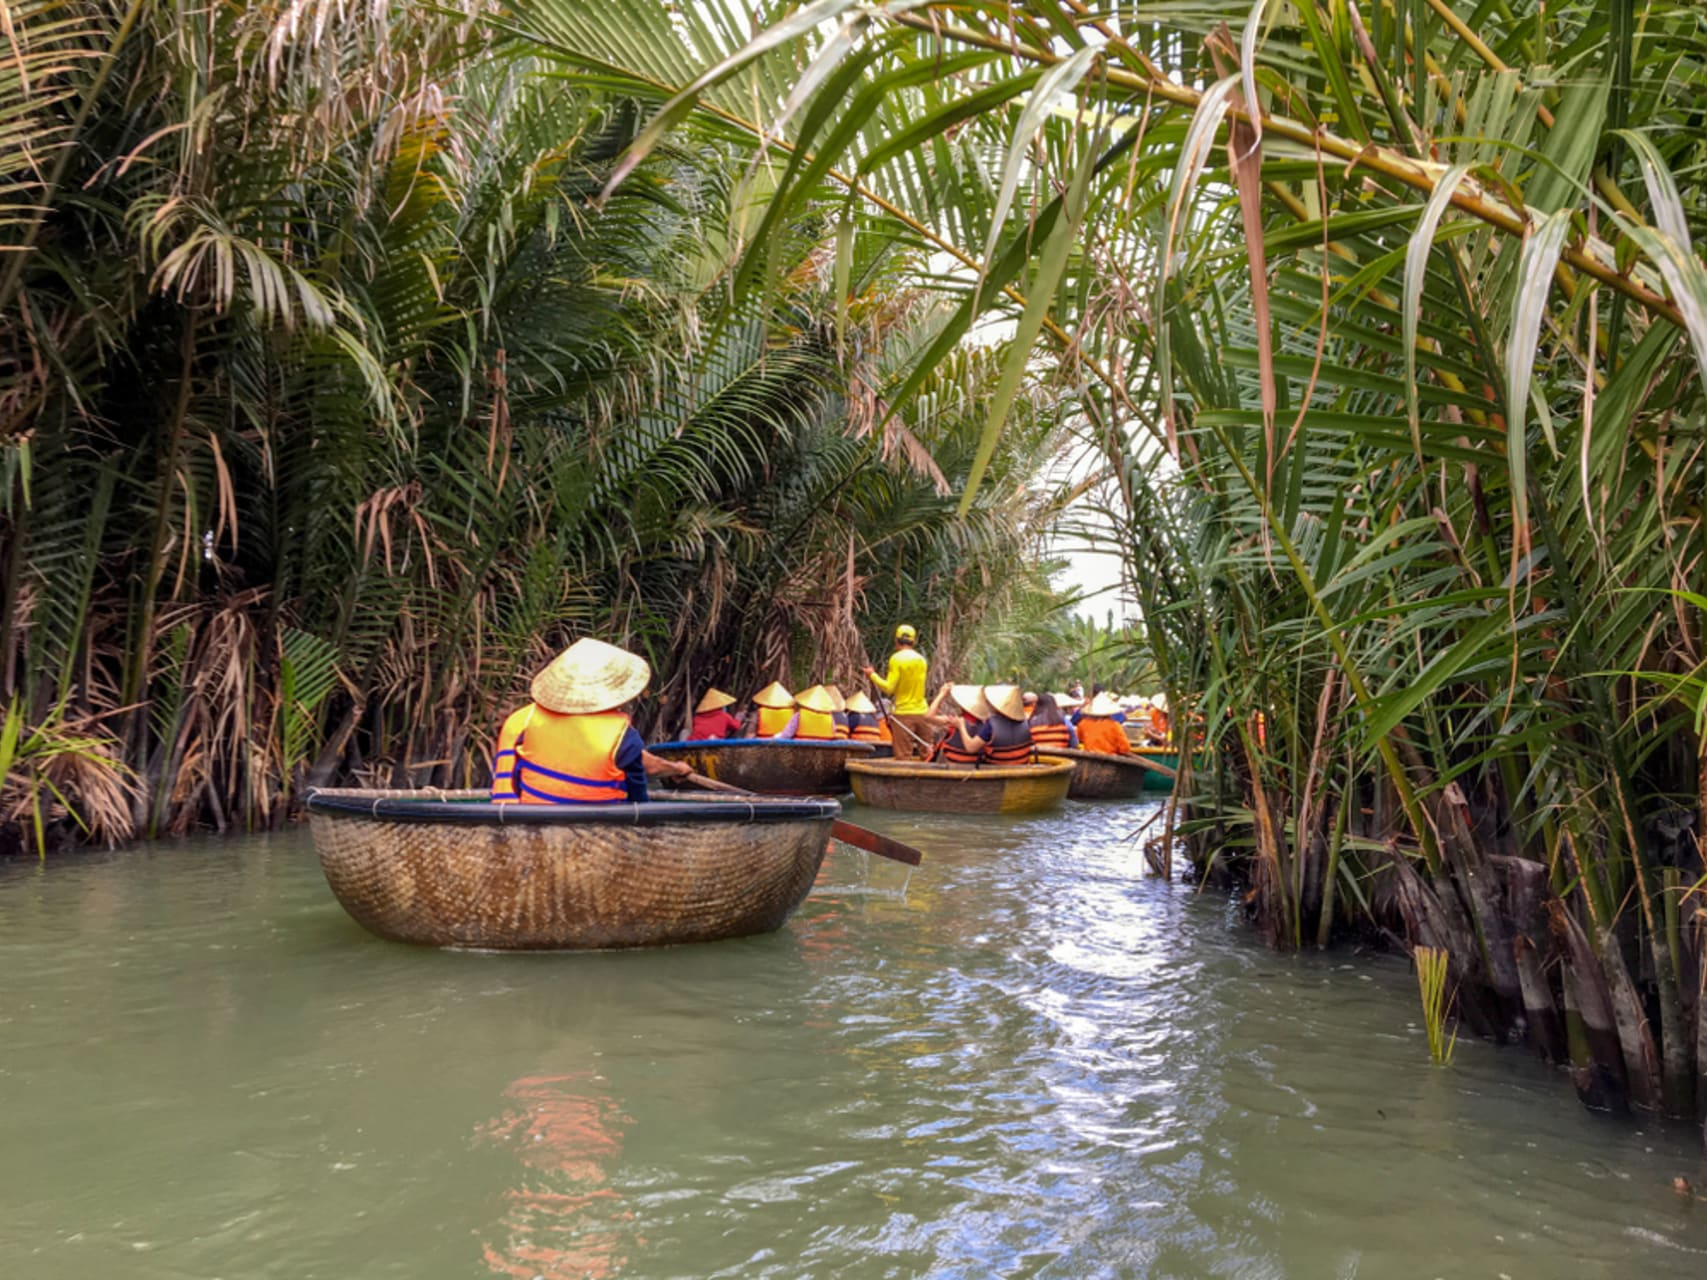 """Hội An - Hội An - Day 3: Row """"Basket Boat"""" along """"Water Coconut"""" Forest"""